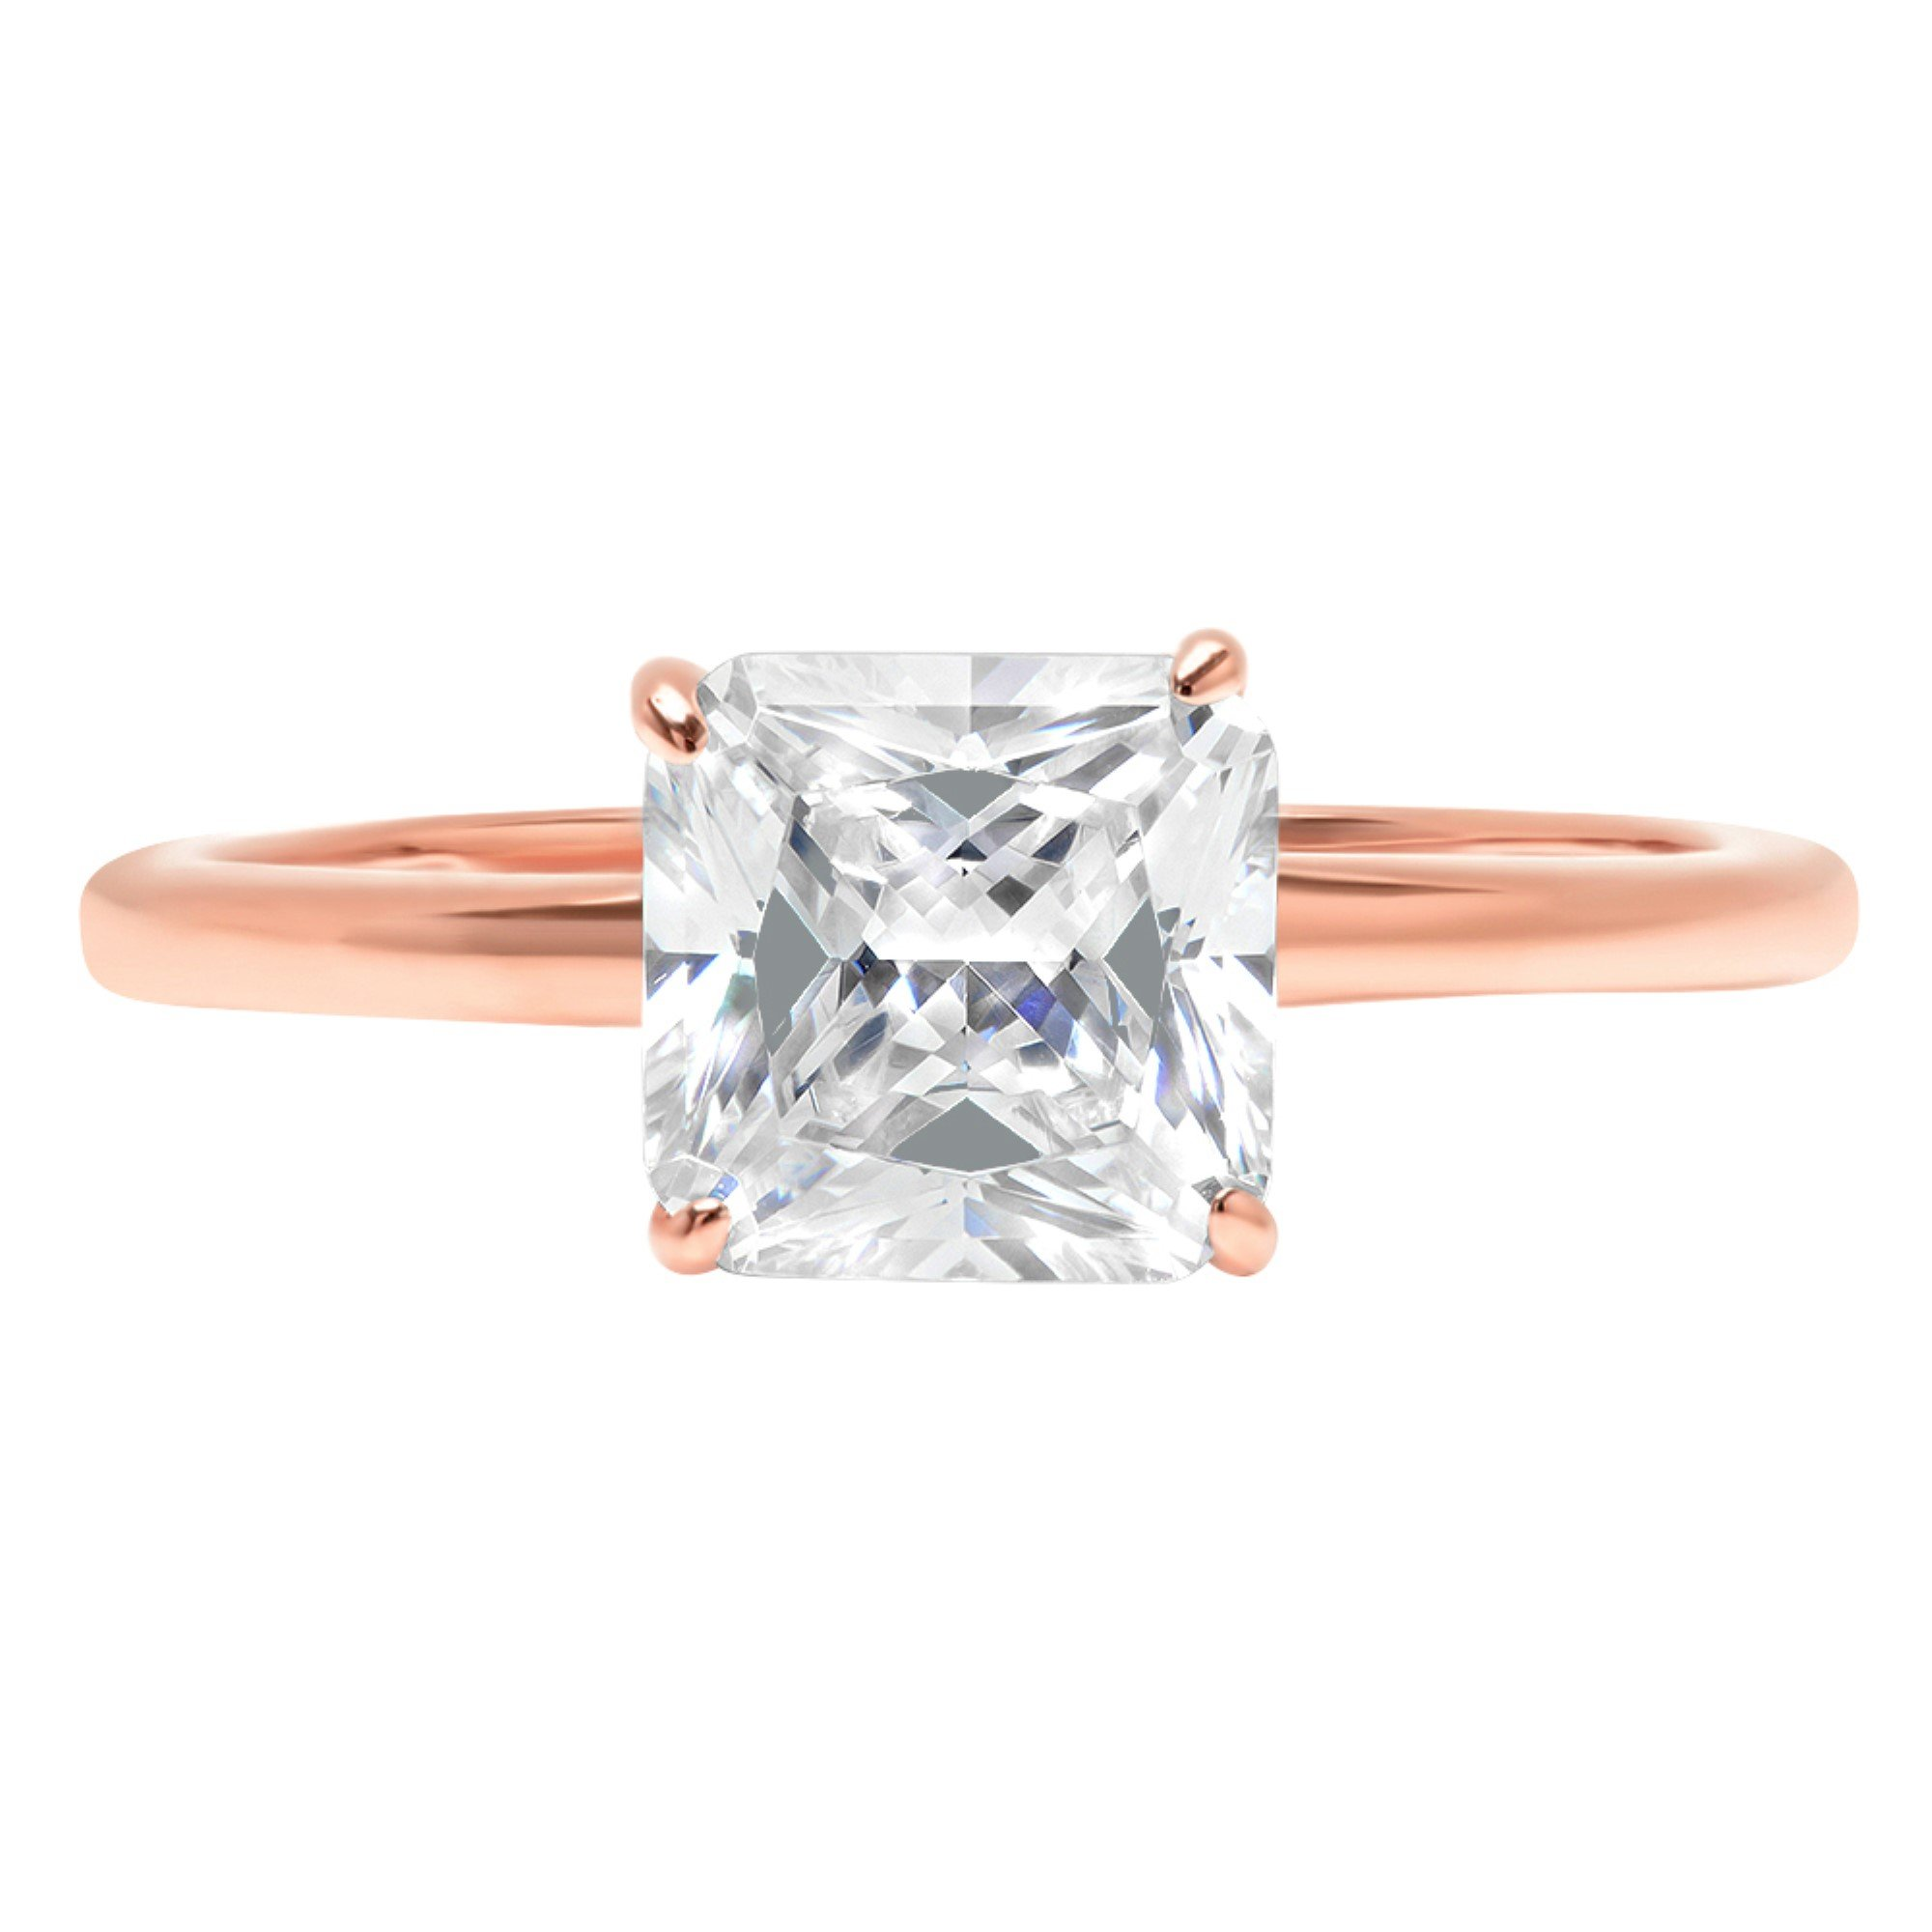 Asscher Brilliant Cut Classic Solitaire Designer Wedding Bridal Statement Anniversary Engagement Promise Ring Solid 14k Rose Gold, 1.2ct, 6.5 by Clara Pucci